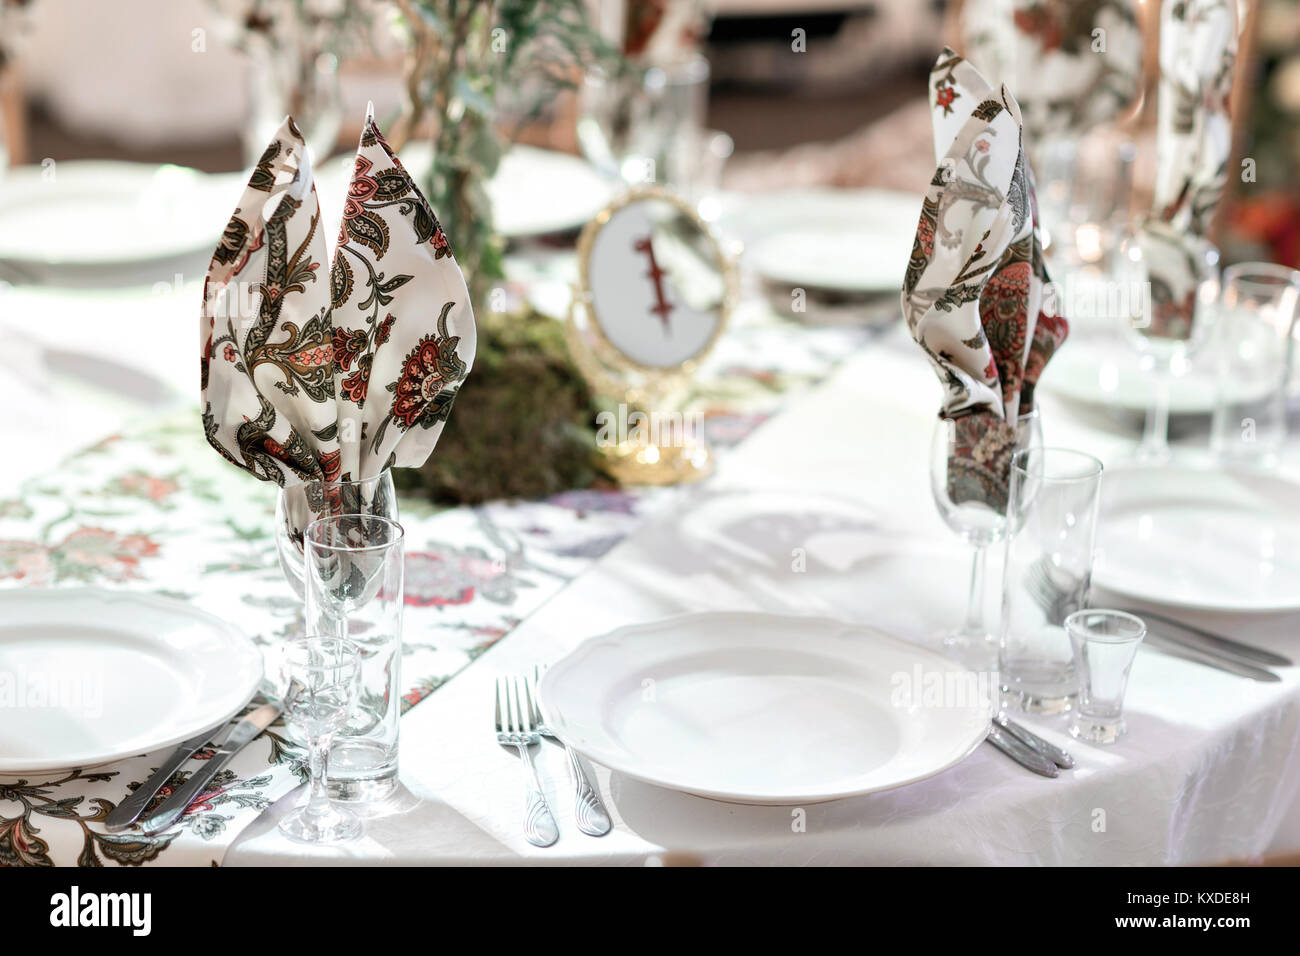 Banquet Hall Dinner Party Stock Photos & Banquet Hall Dinner Party ...